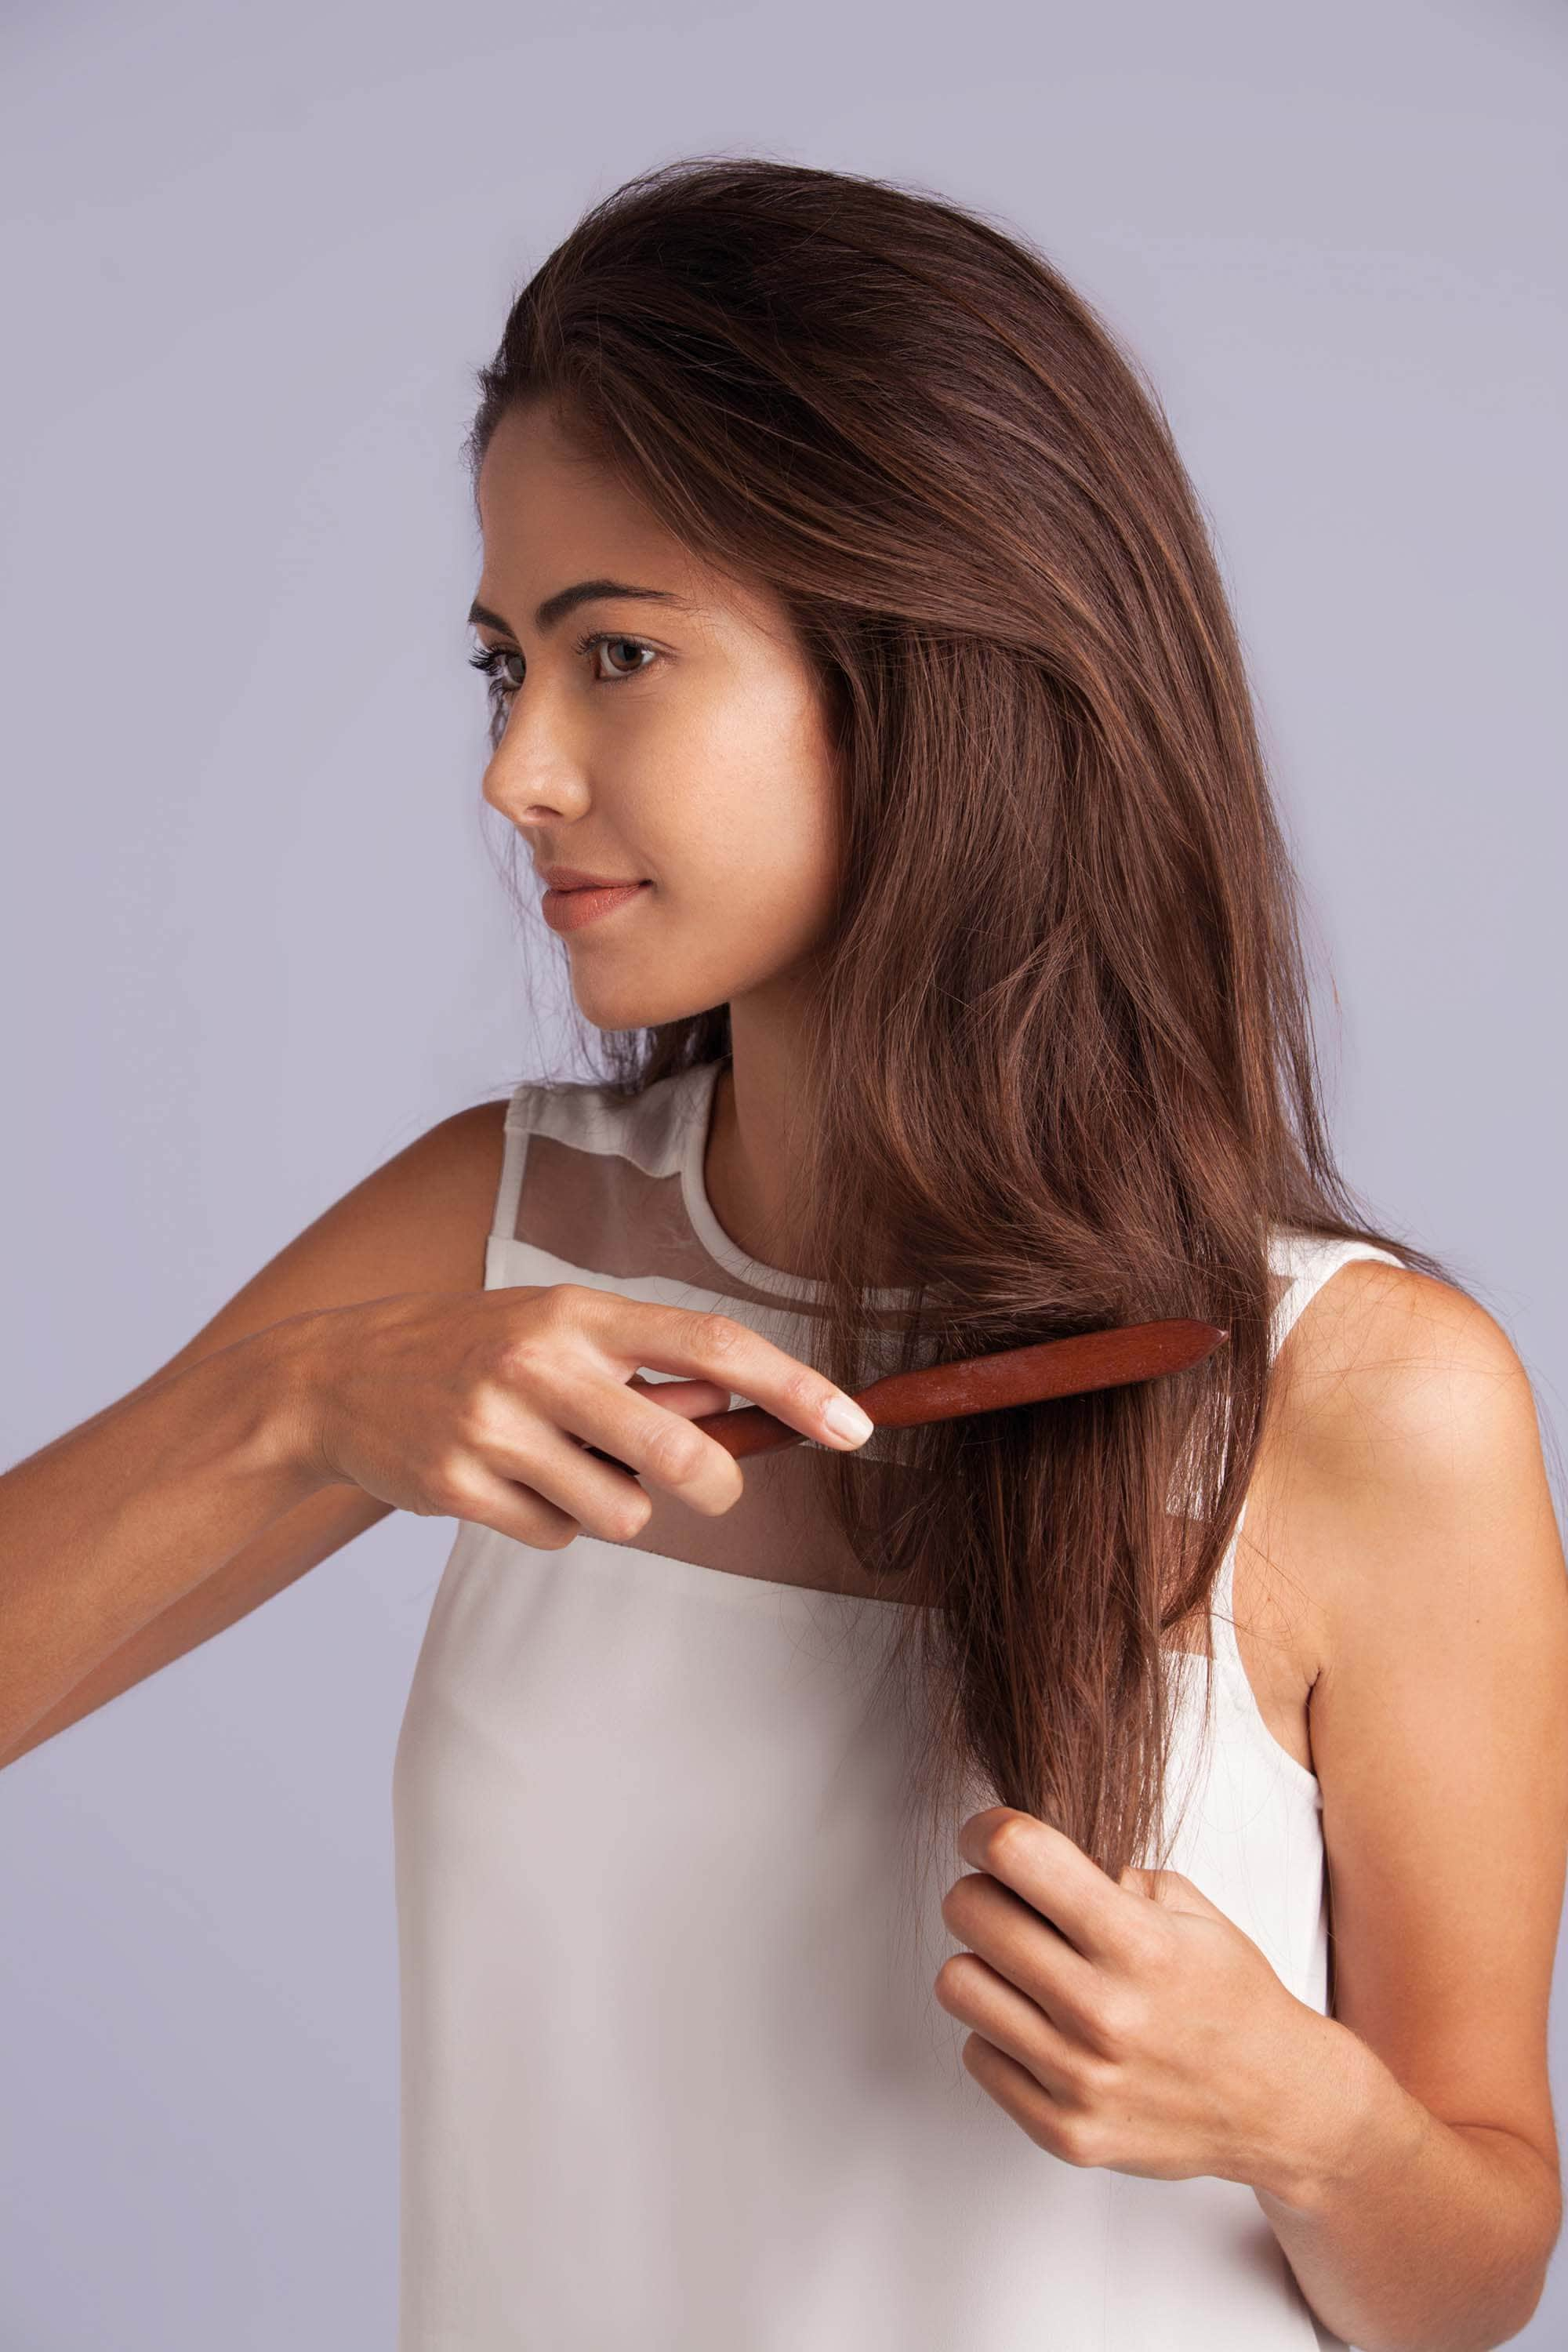 How to get thicker hair: Brunette woman brushing her hair, wearing a white sleeveless top in front of a purple studio background